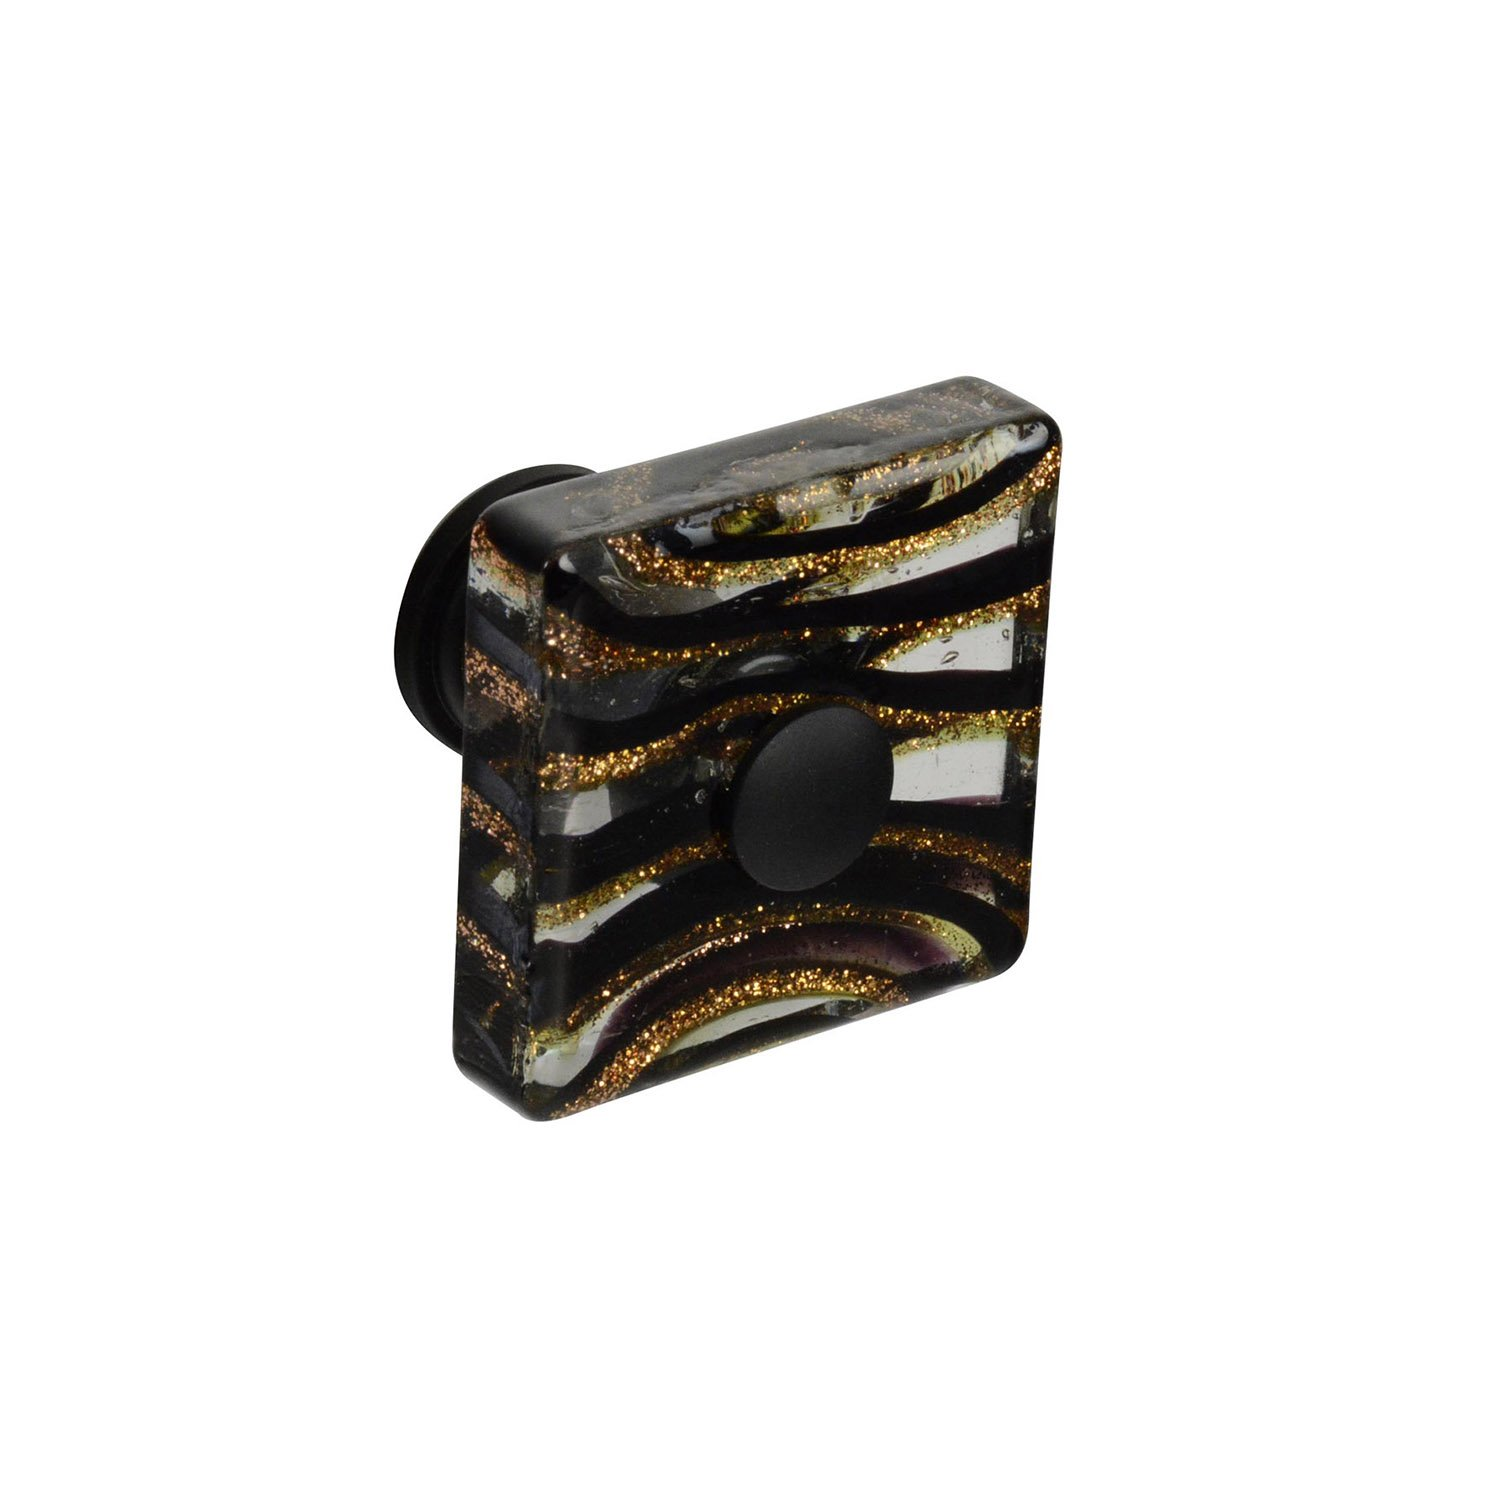 Knob Deals #93205 - 1-1/2 in. (38mm) Milky Way Square Glass Knob - 10 Pack